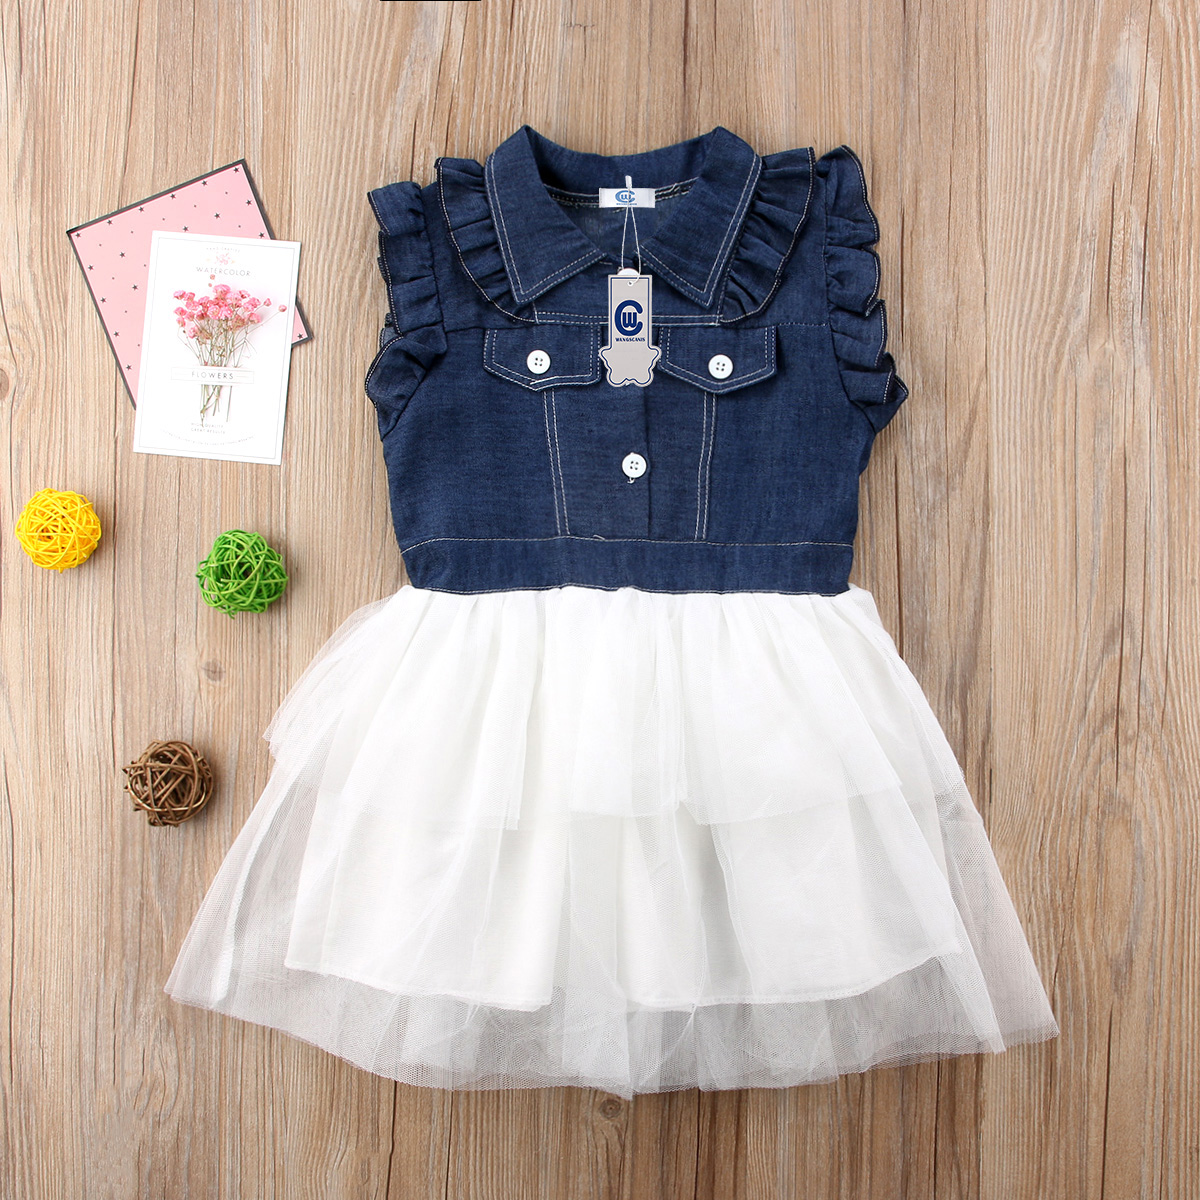 c953e29c45 Fashion New Princess Toddler Kid Baby Girls Summer Sleeveless Pocket  Buttons Denim Patchwork Tulle Tutu Formal Dress -in Dresses from Mother    Kids on ...